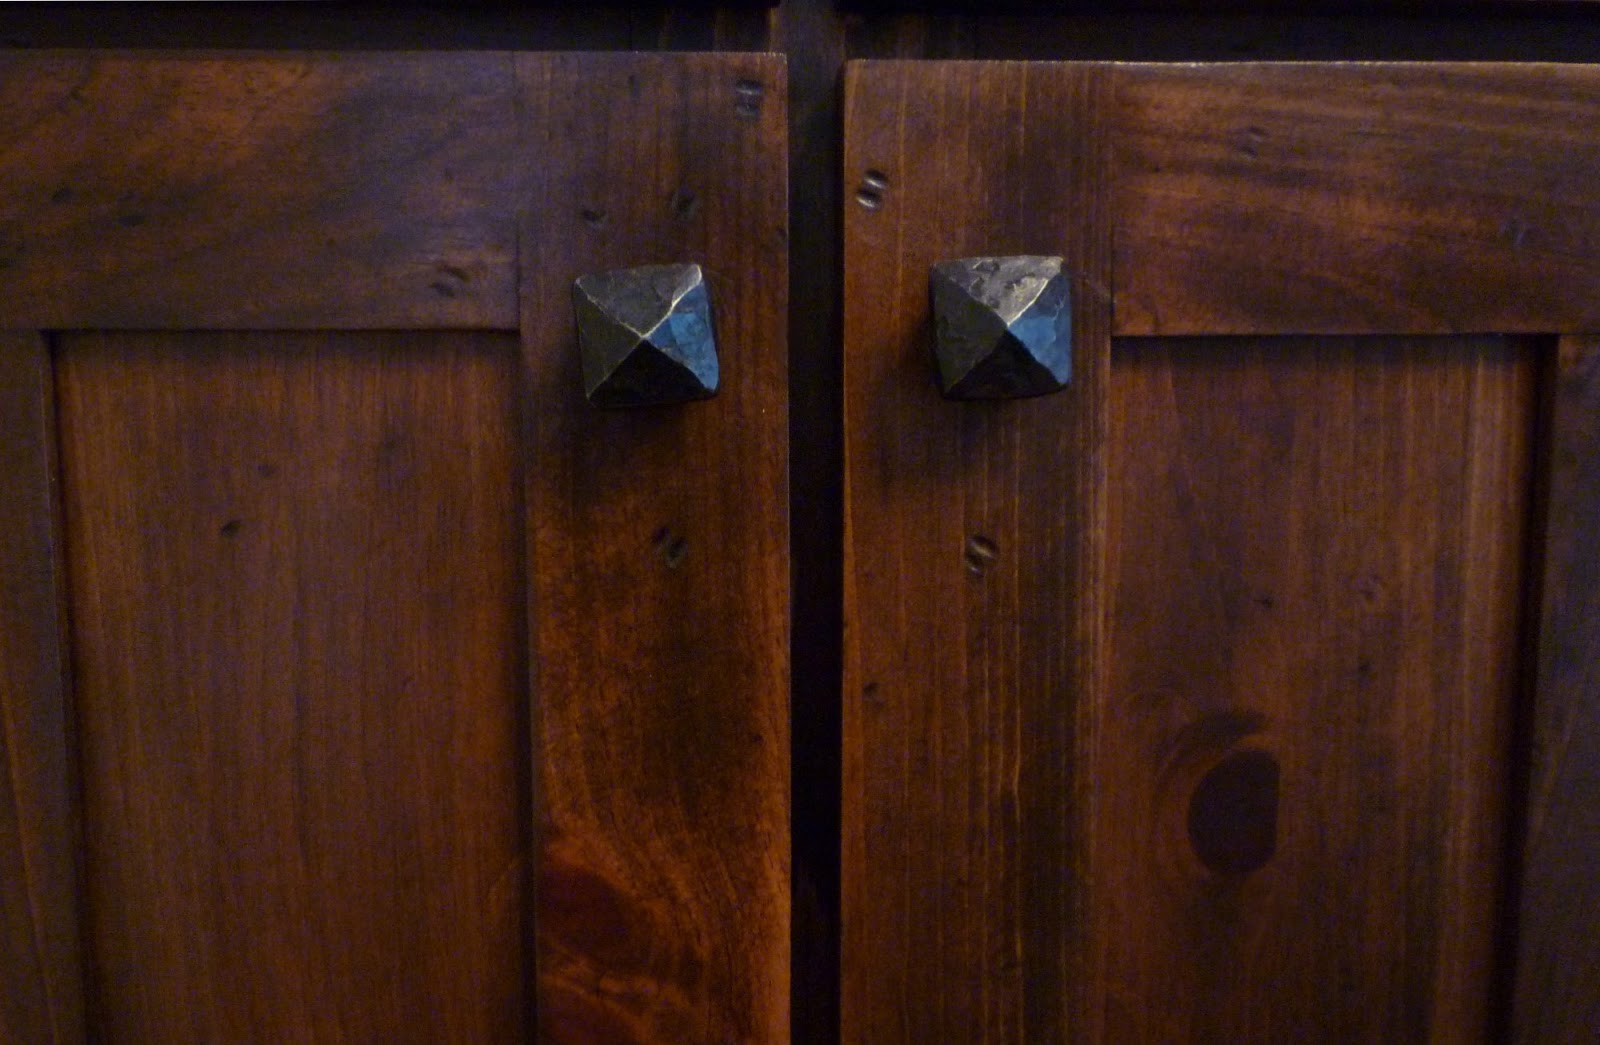 Rustic Cabinet Handles Rustic Cabinet Hardware Pull Kelmscott Manor Collection Of